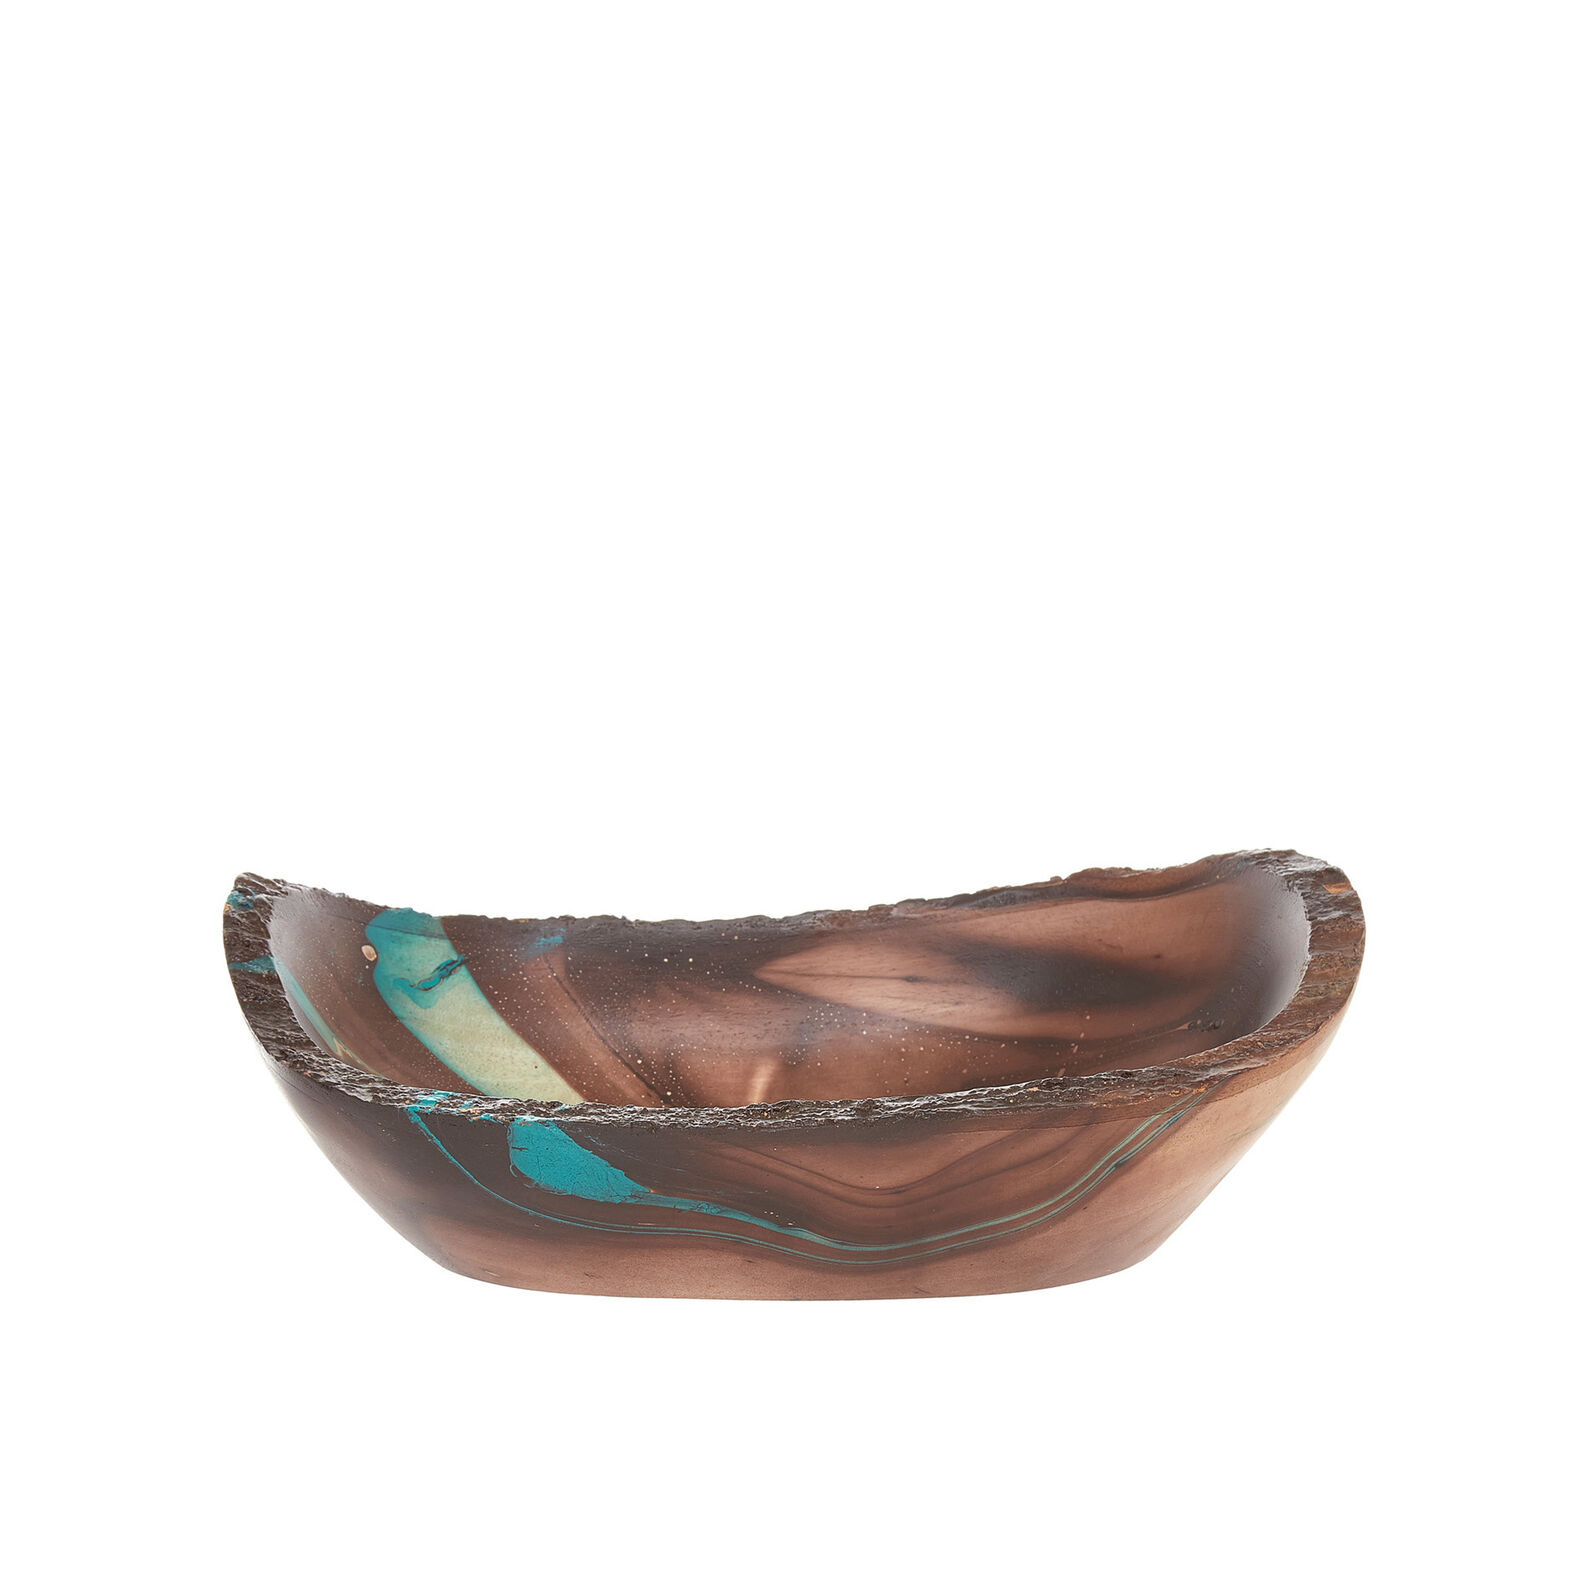 Handmade decorative mango wood bowl